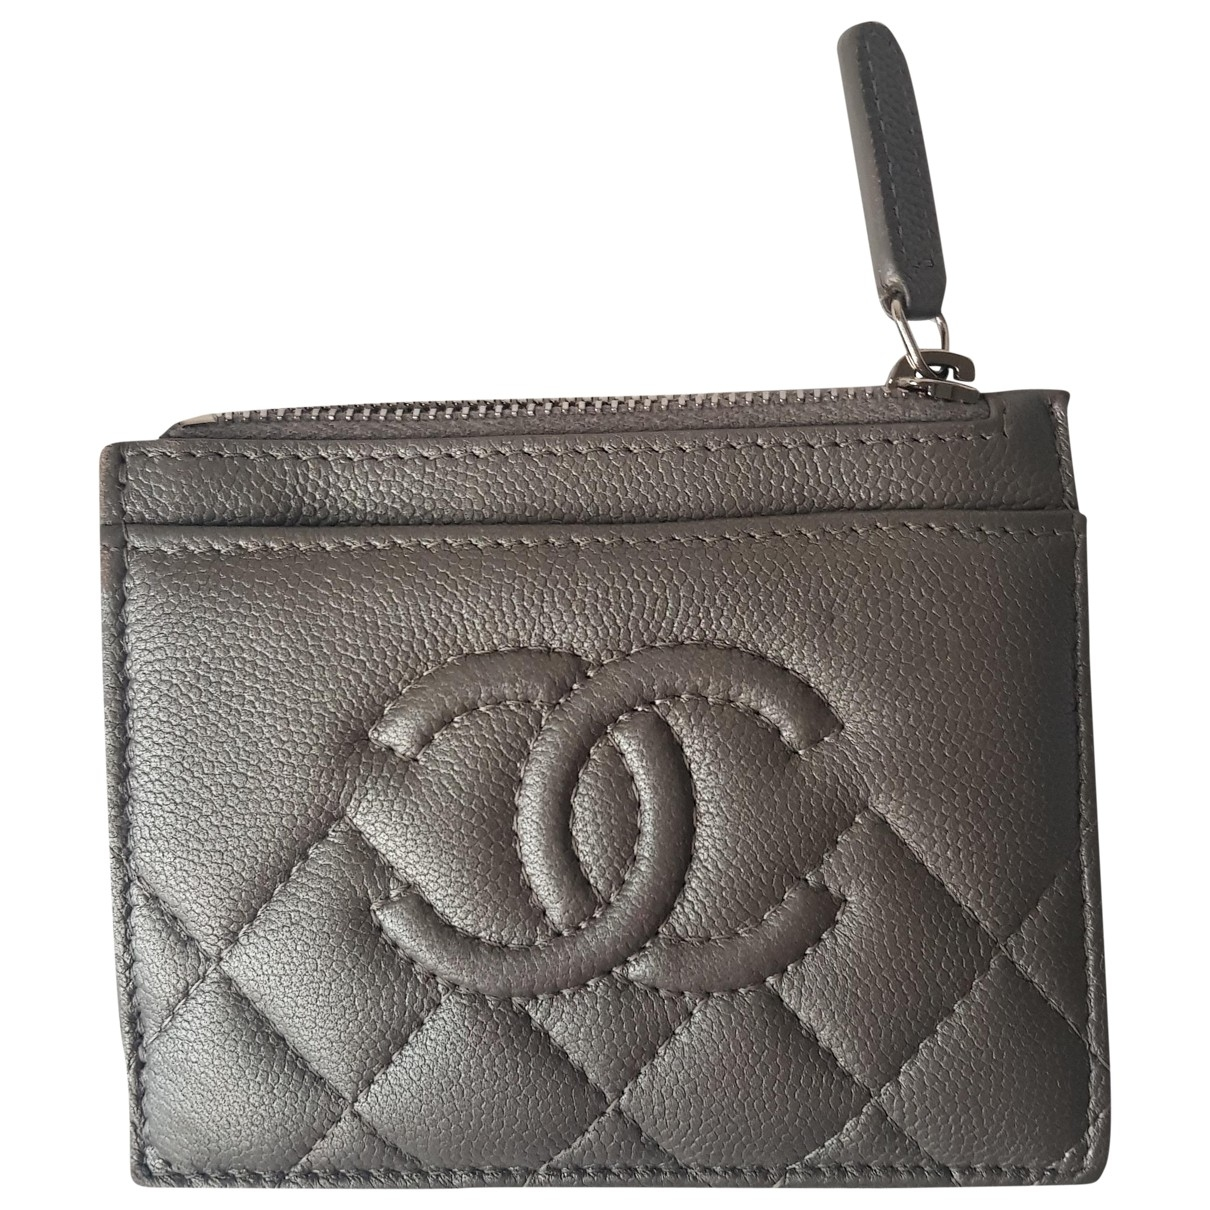 Chanel Timeless/Classique Kleinlederwaren in  Silber Leder